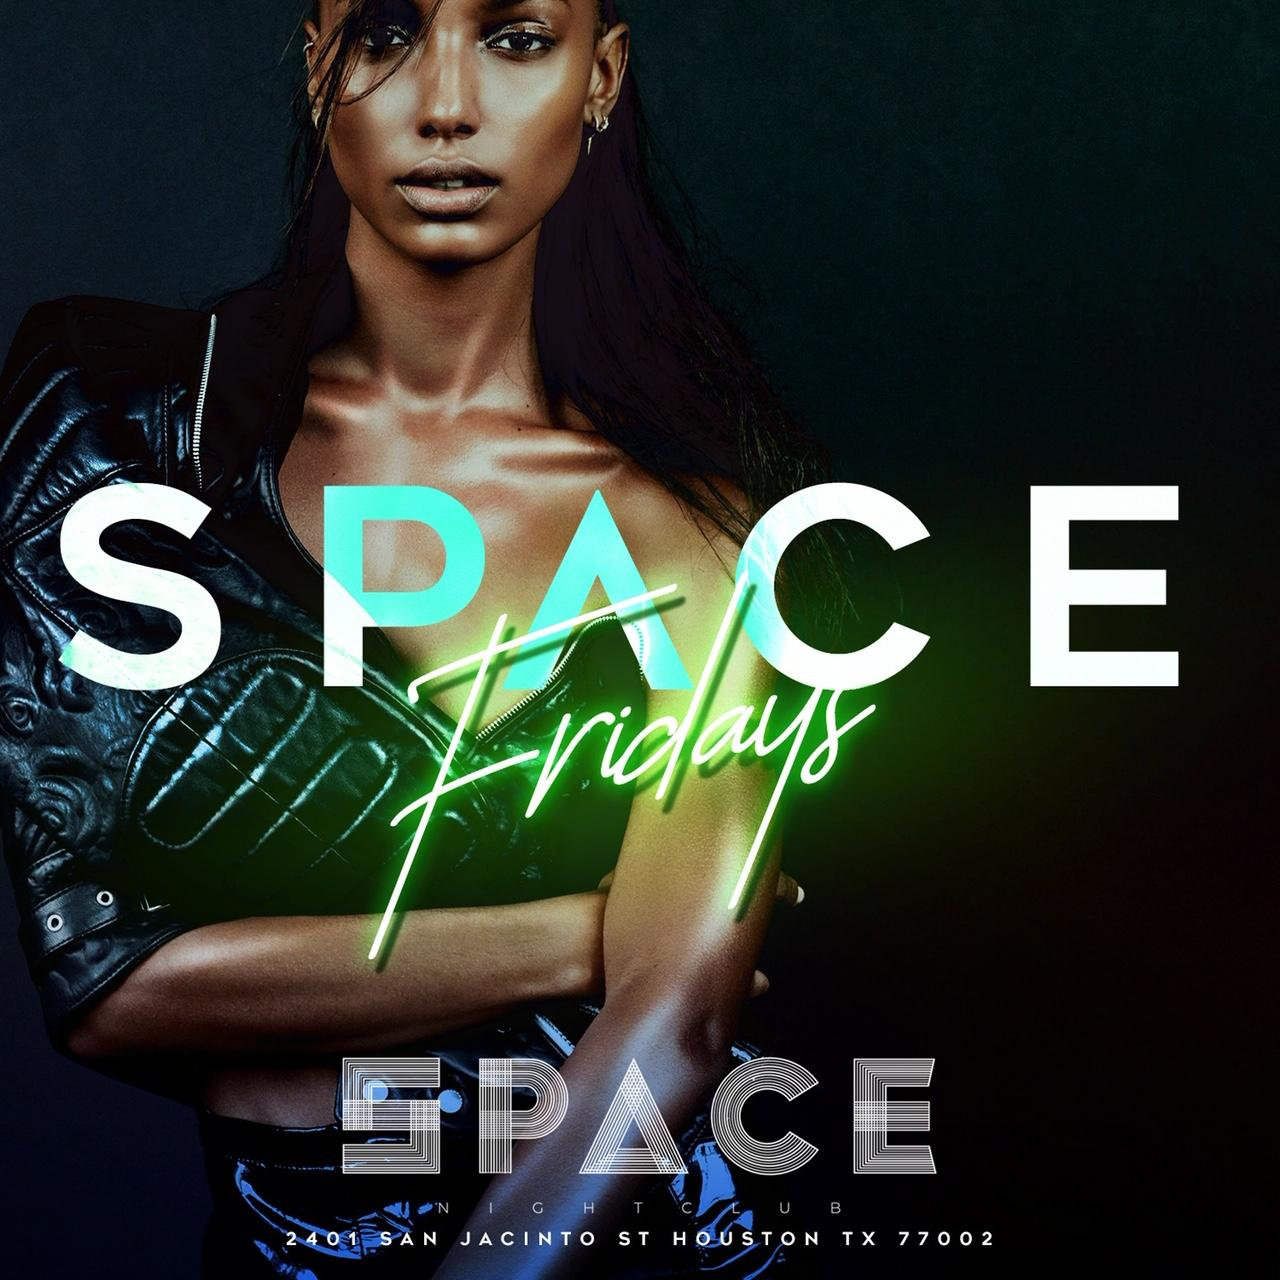 SPACE FRIDAYS | DJ MR ROGERS x DJ A-PLUS x MC BEEZY indmix